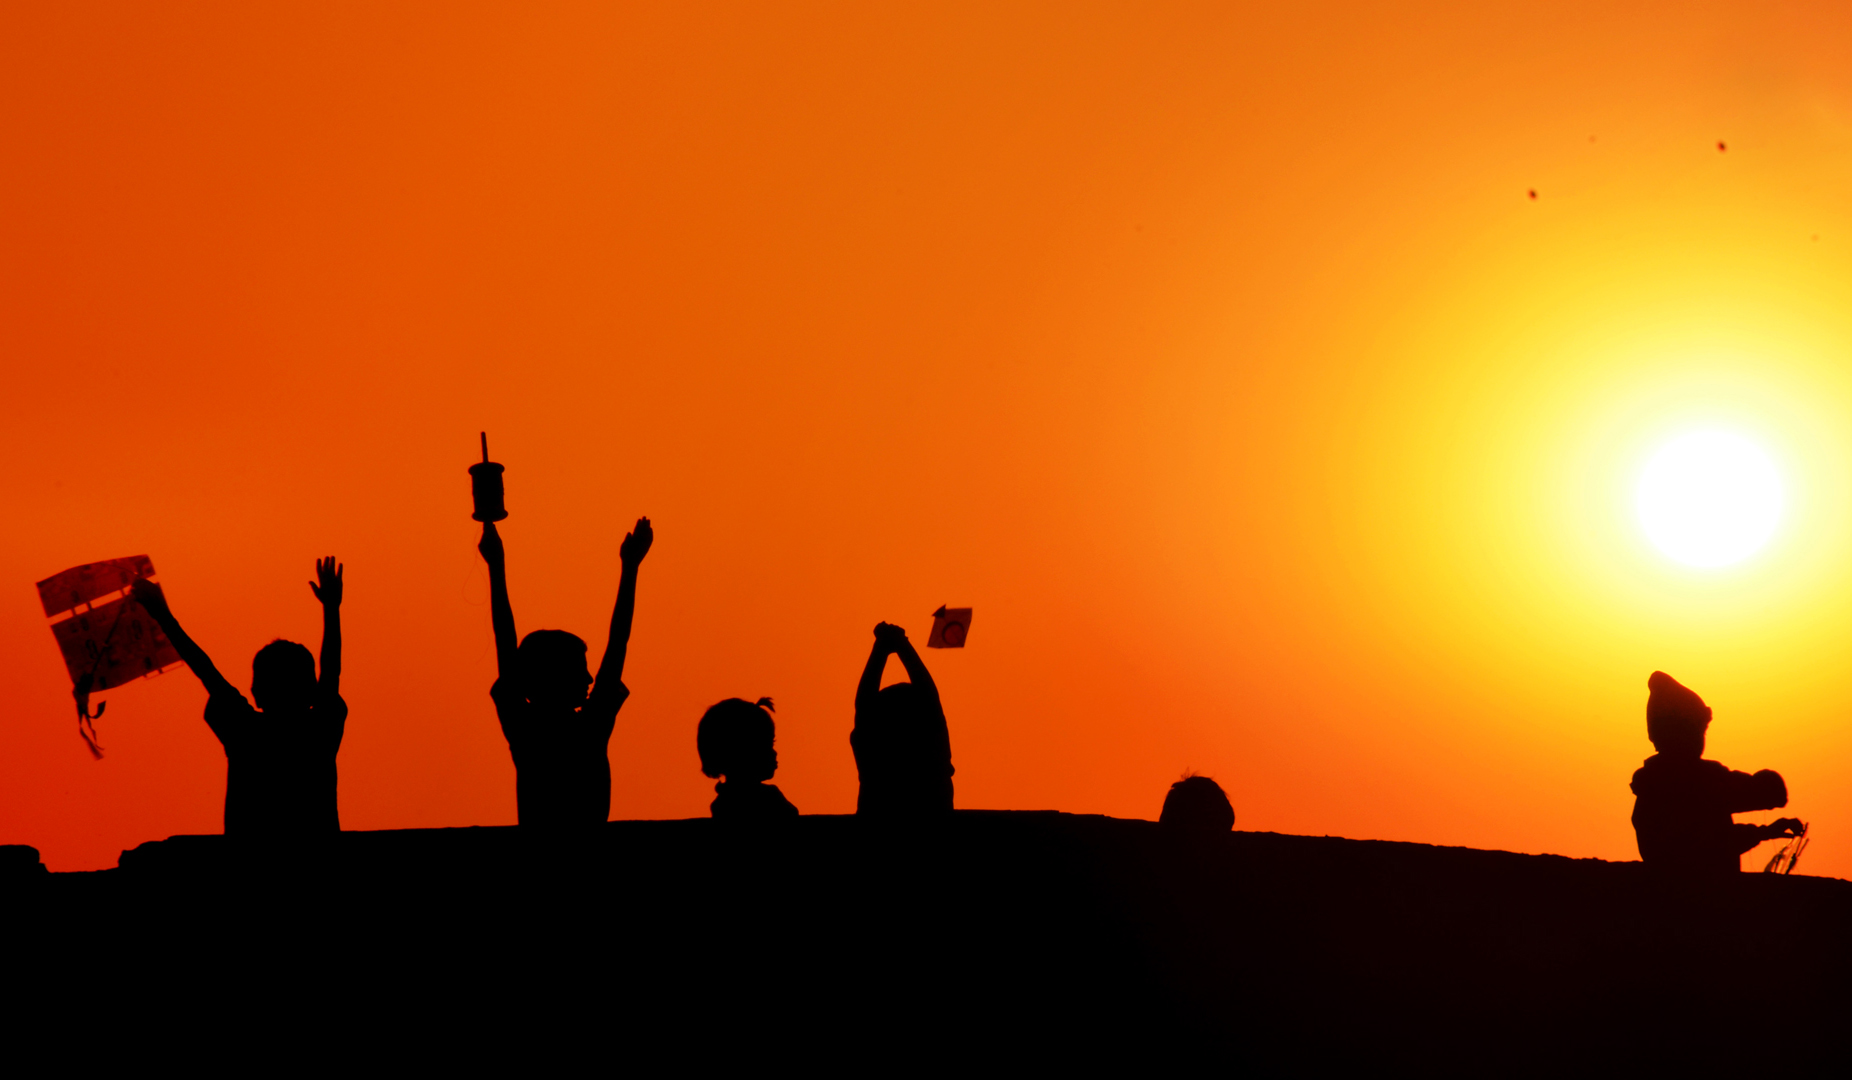 filesunset with amazing felling of childrens happiness